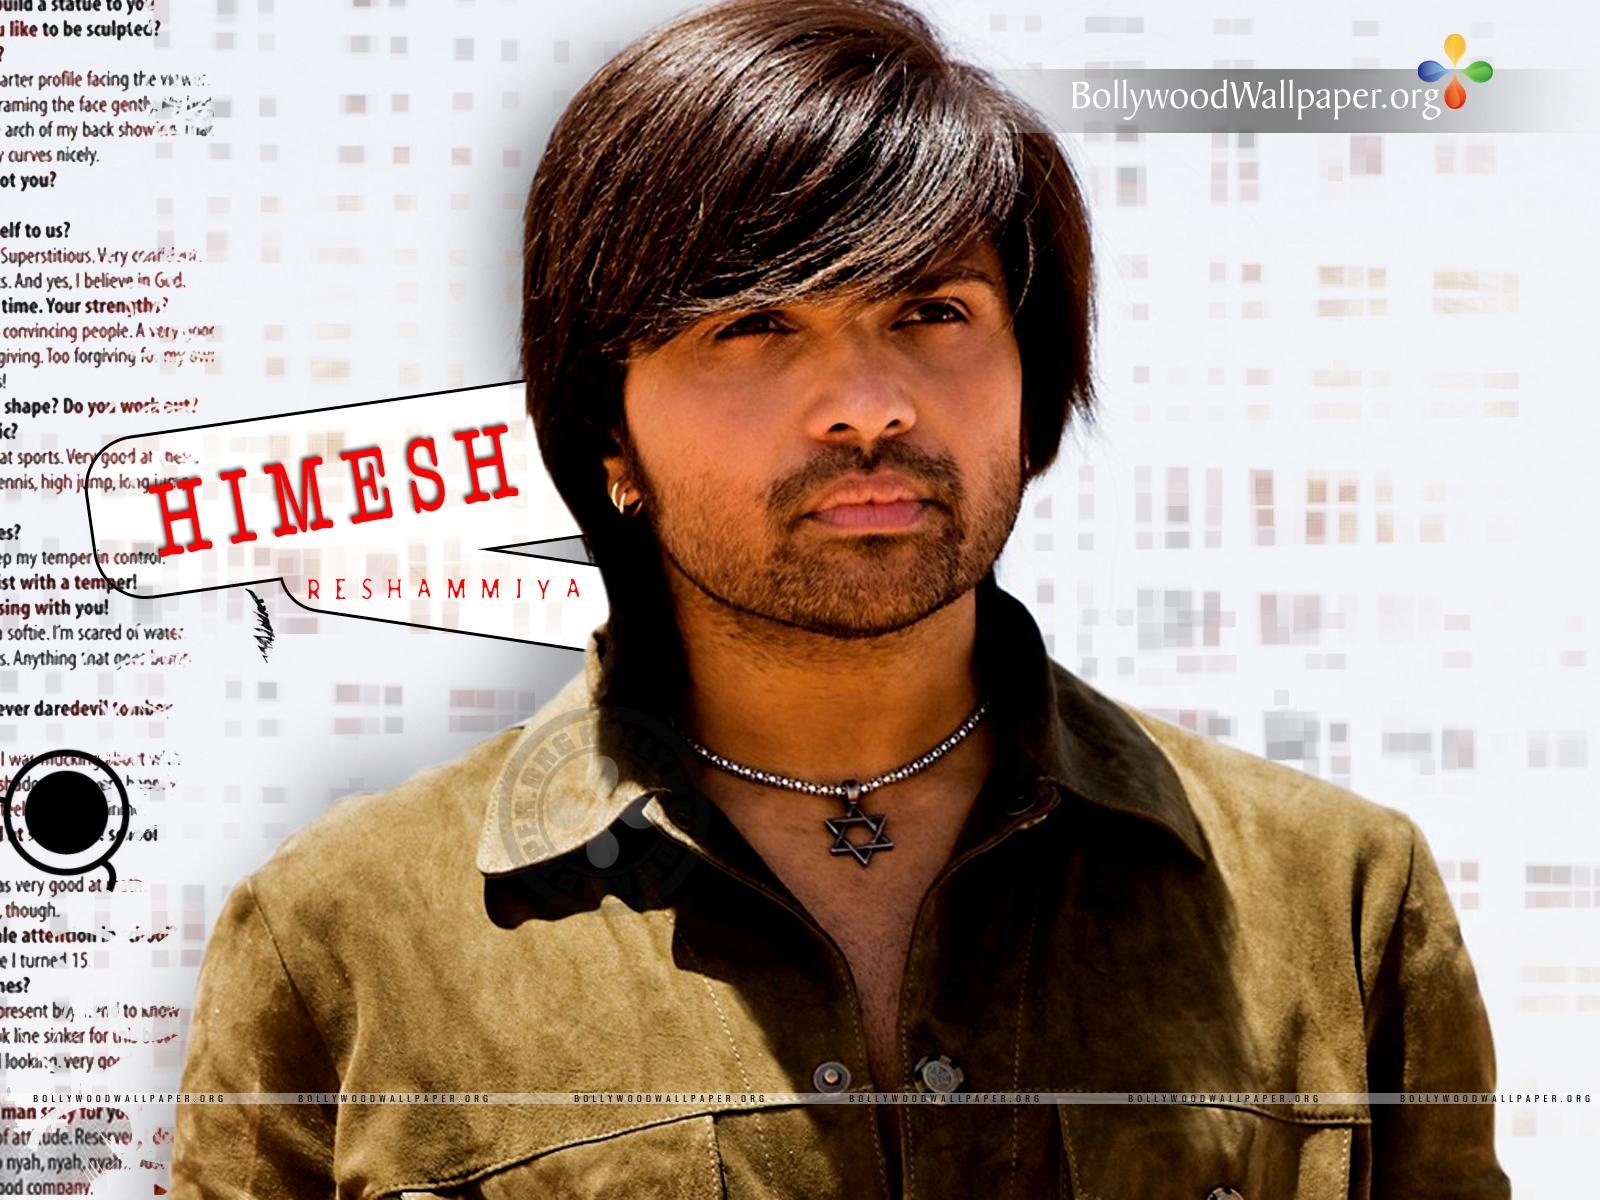 Rajula himesh mp3 songs